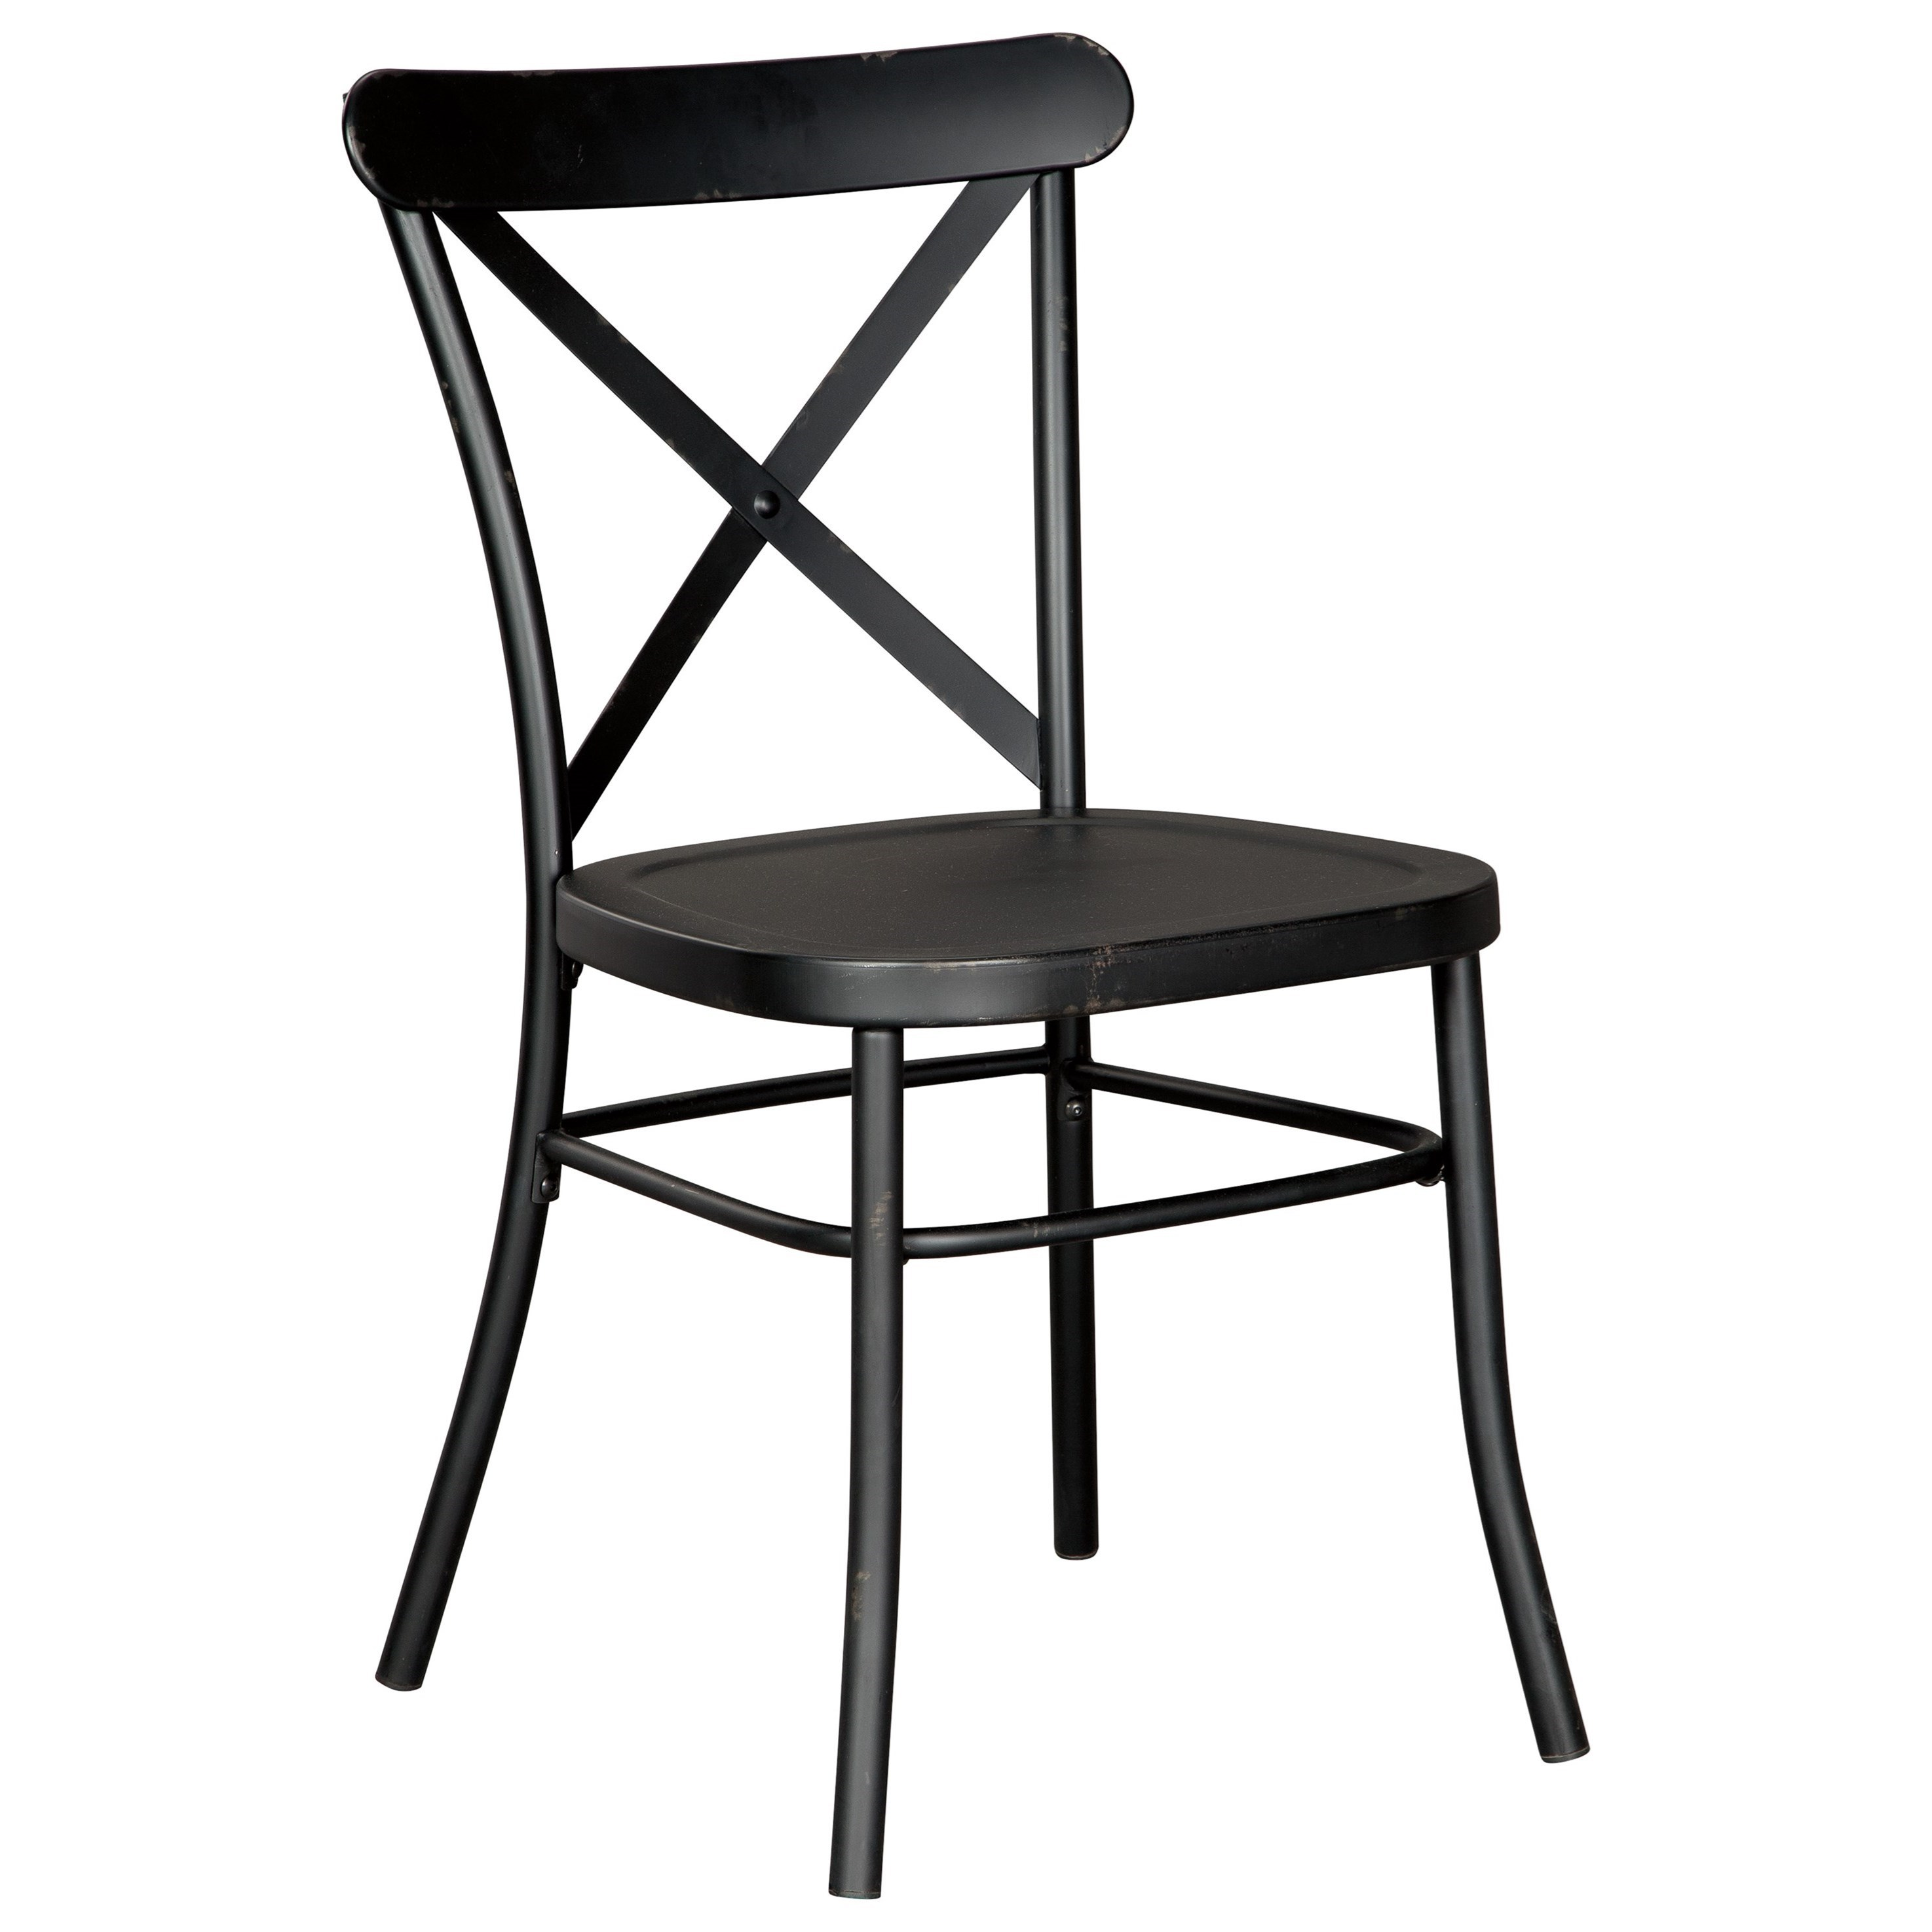 Signature Design by Ashley Minnona Dining Room Side Chair - Item Number: D400-102